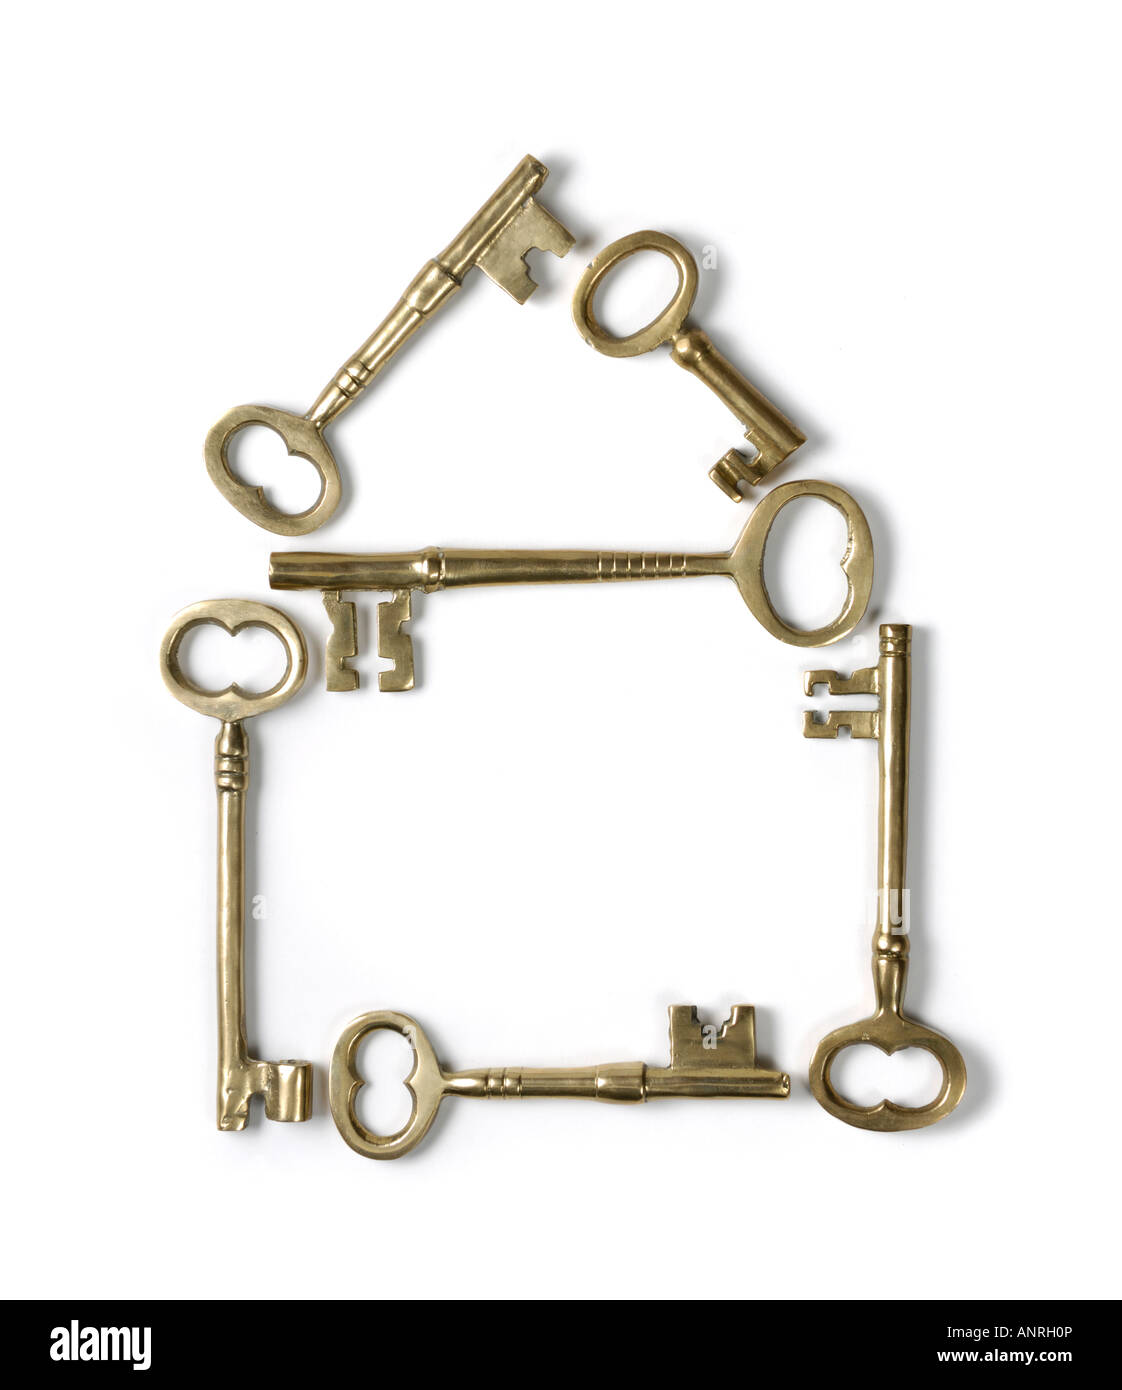 Symbole accueil faits de cuivre brillant skeleton keys Photo Stock